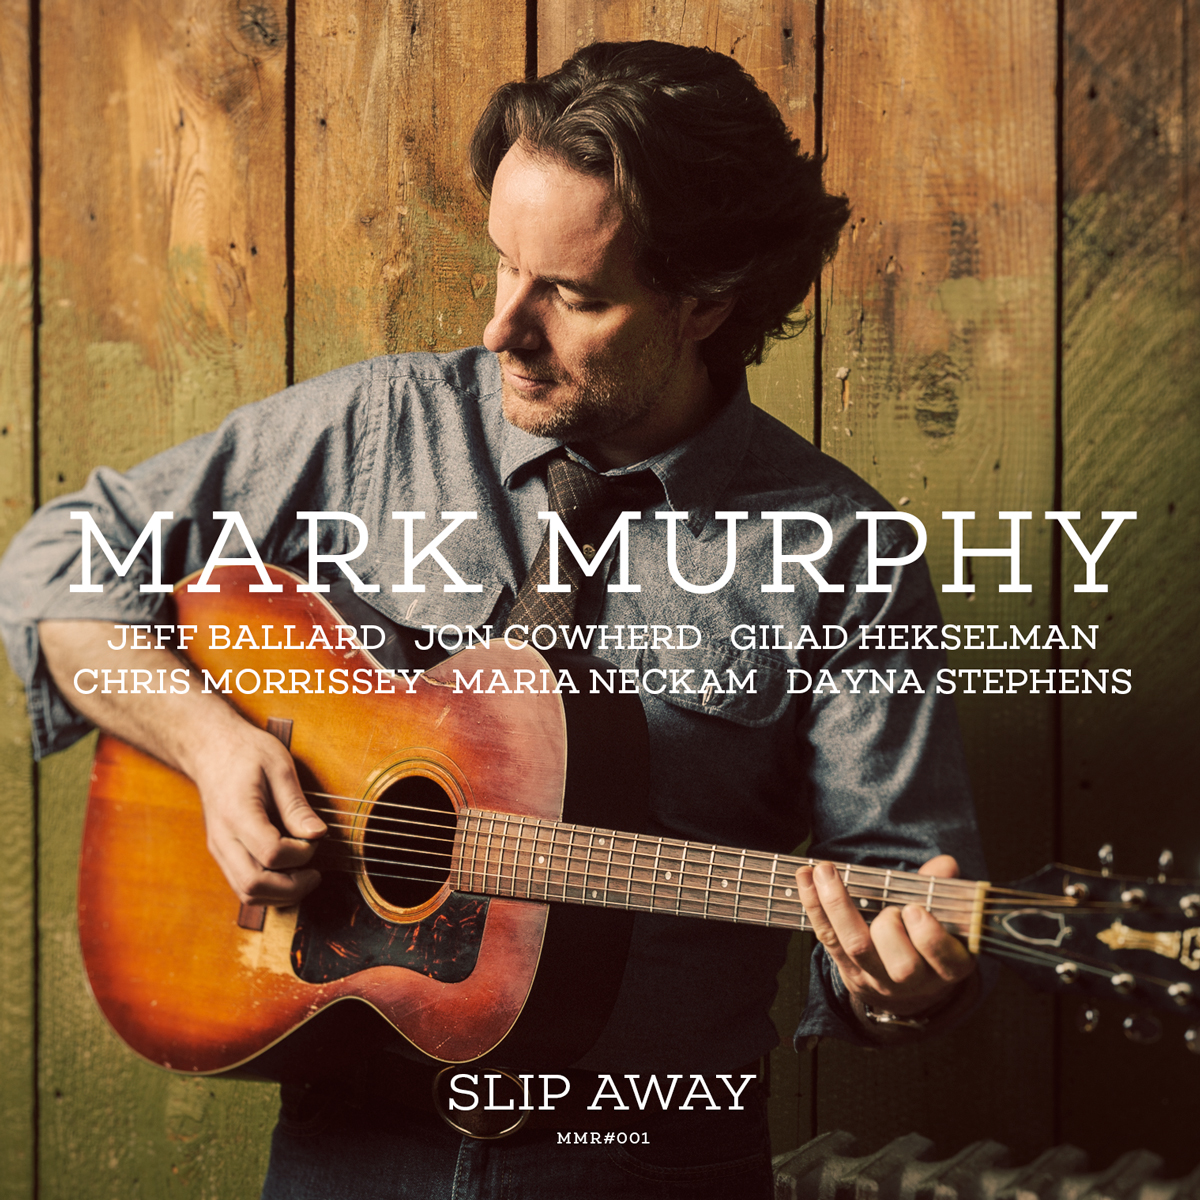 MARK MURPHY - TITLE: SLIP AWAYRELEASED: OCTOBER 25th, 2016LABEL: INDIEPRODUCED BY MARK MURPHYThe album features, Jeff, Jon Cowherd, Gilad Hekselman, Maria Neckam and Dayna Stephens.The Music is a unique fusion of styles and genres, creating one of the most convincing musical collaborations between jazz and modern contemporary pop music to date.PRODUCED BY MARK MURPHYRECORDED AT THE BUNKER STUDIO, BROOKLYN